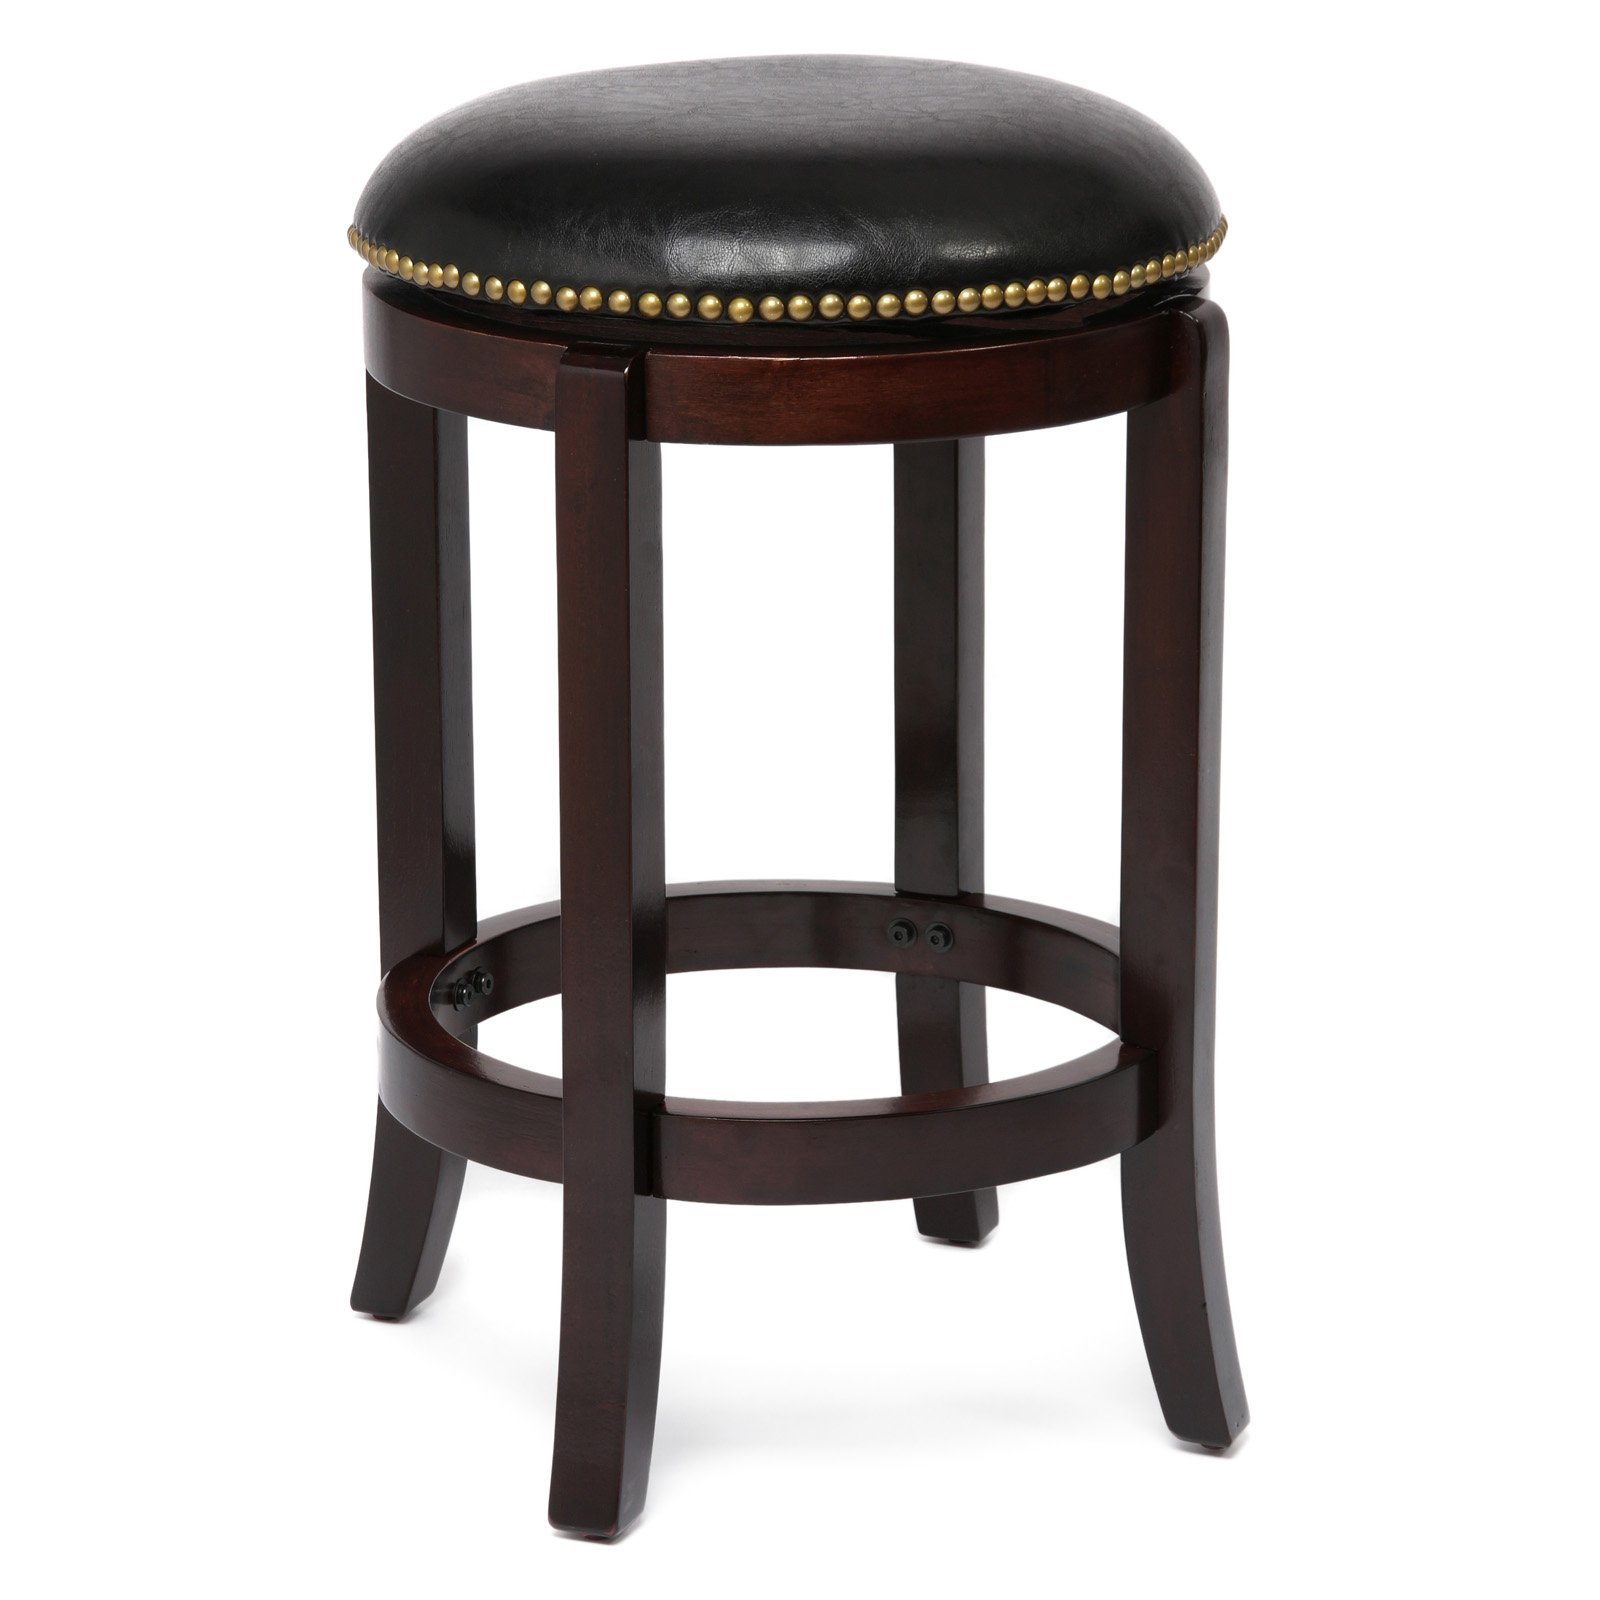 cordova bar stool.jpg